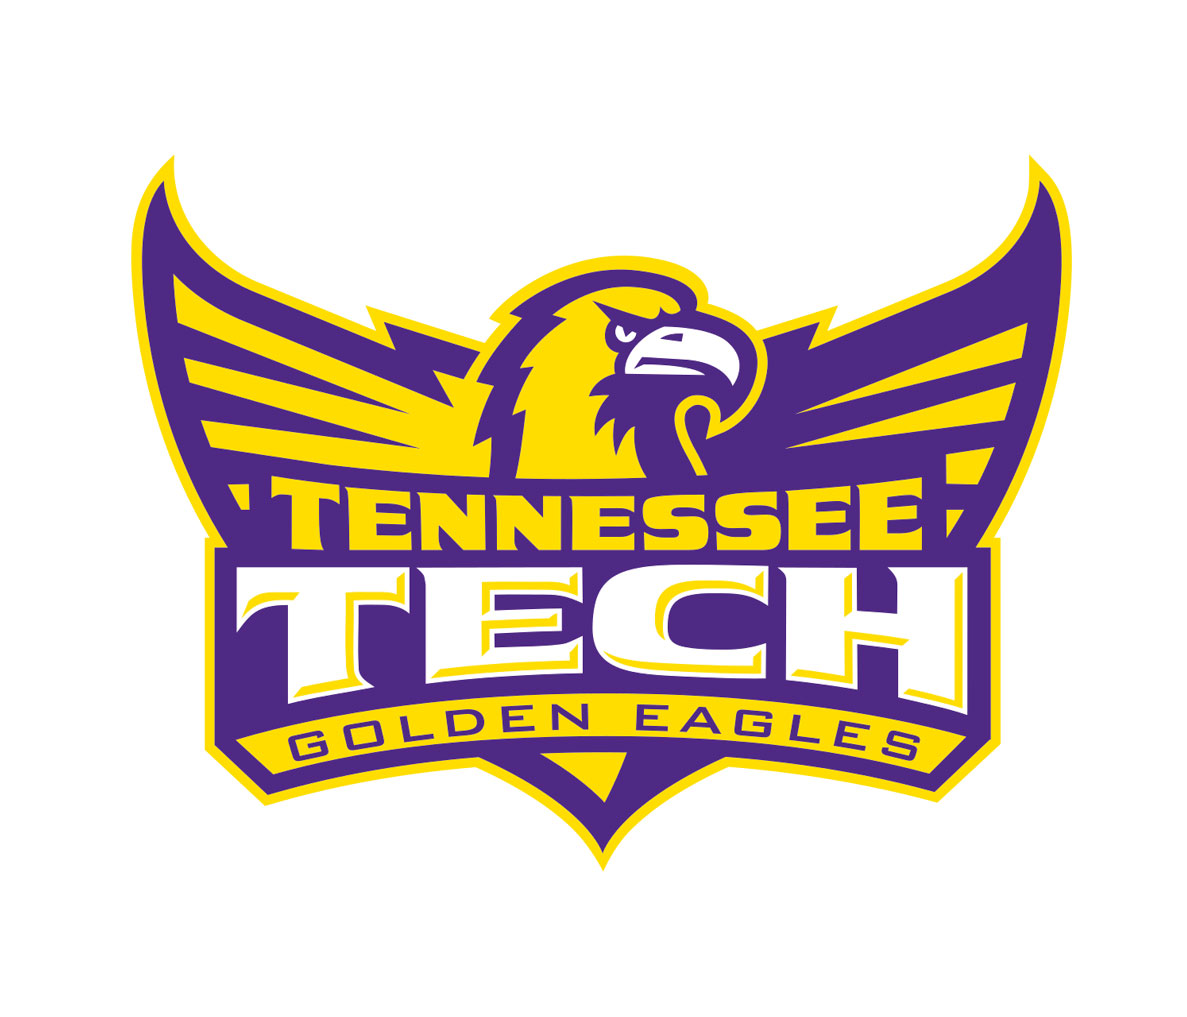 Tennessee Technological Golden Eagles